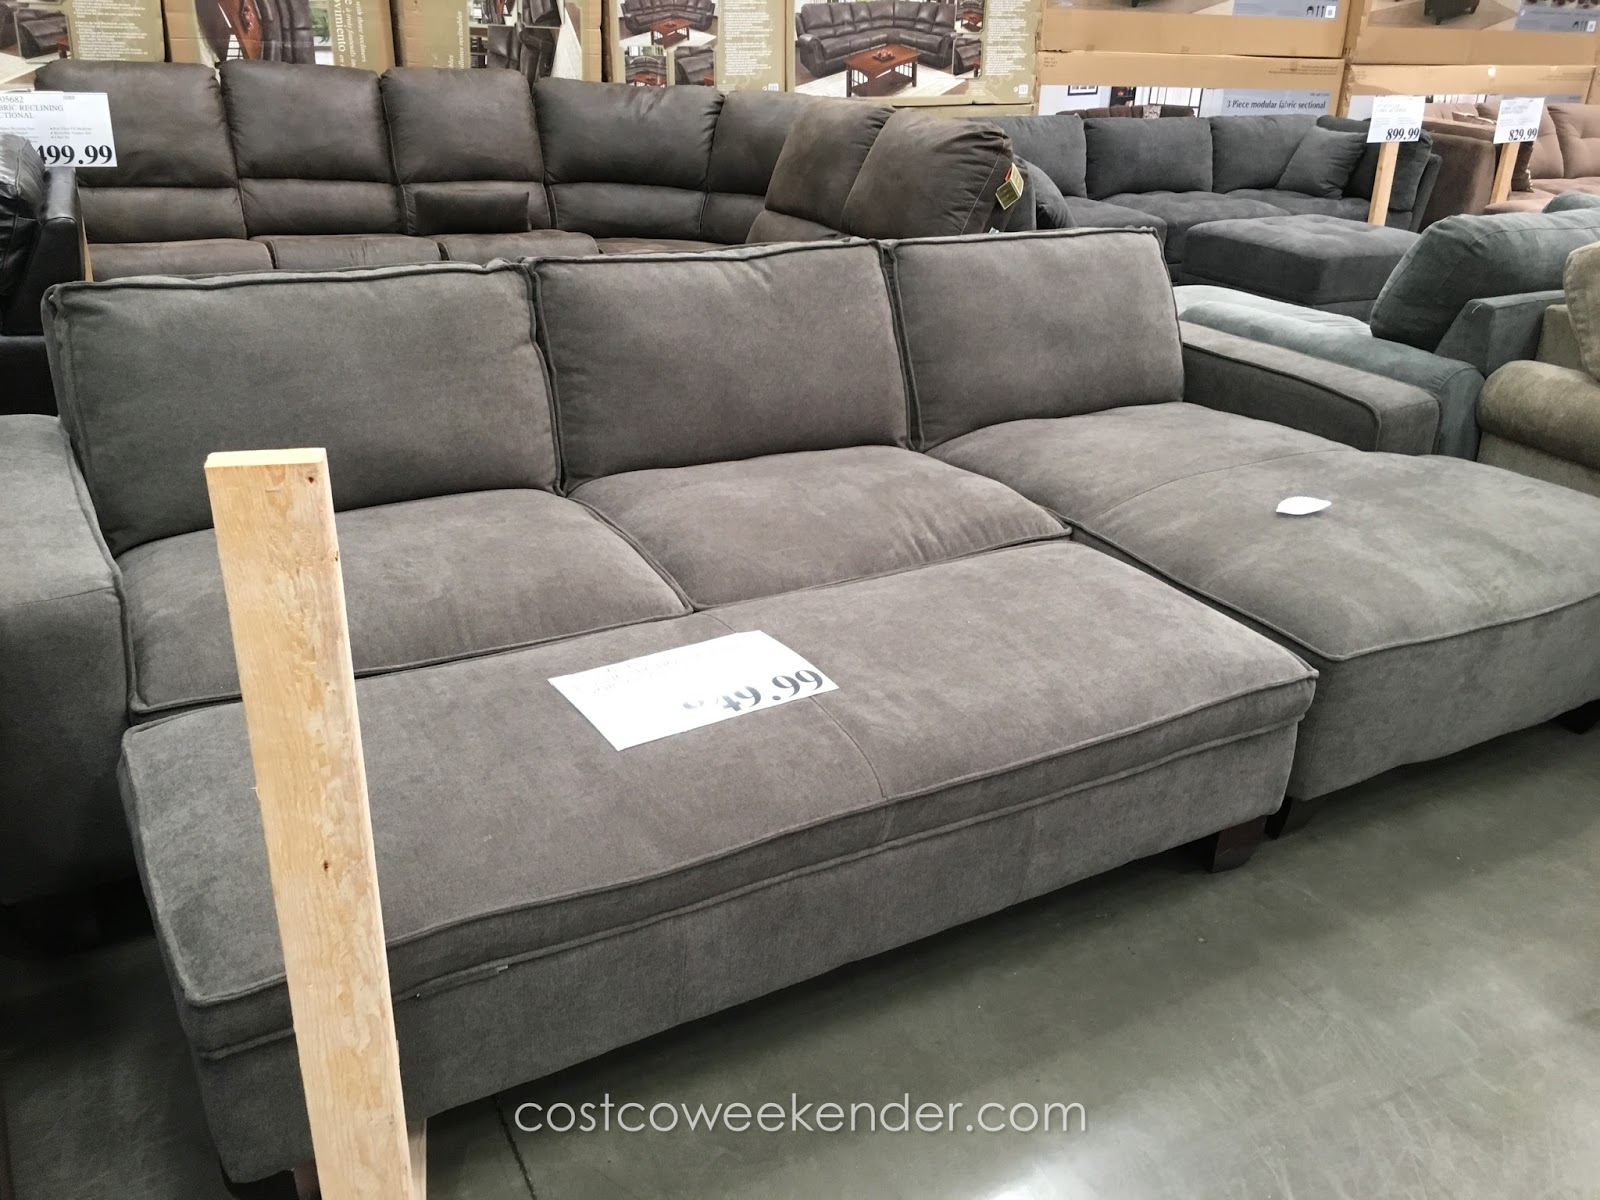 Chaise Sectional Sofa with Storage Ottoman | Costco Weekender